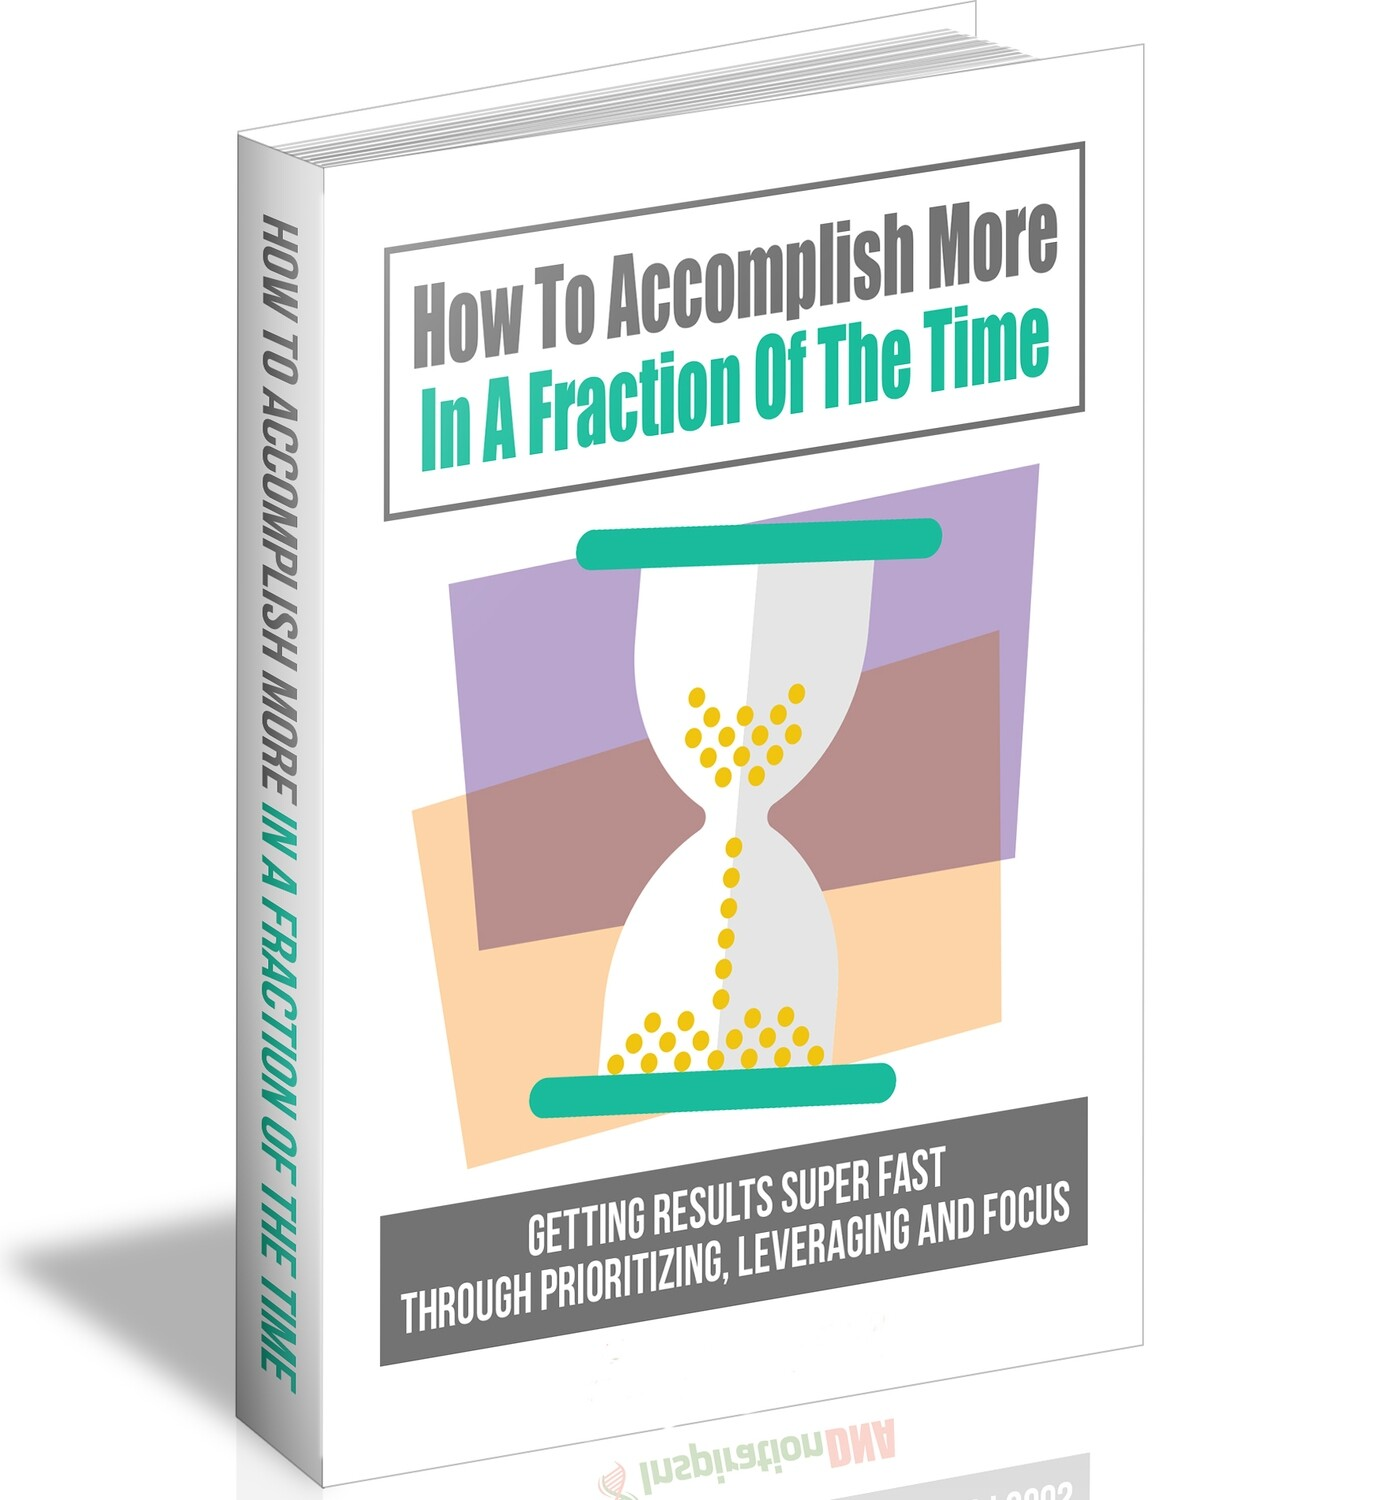 How To Accomplish More In A Fraction Of The Time (E-book)